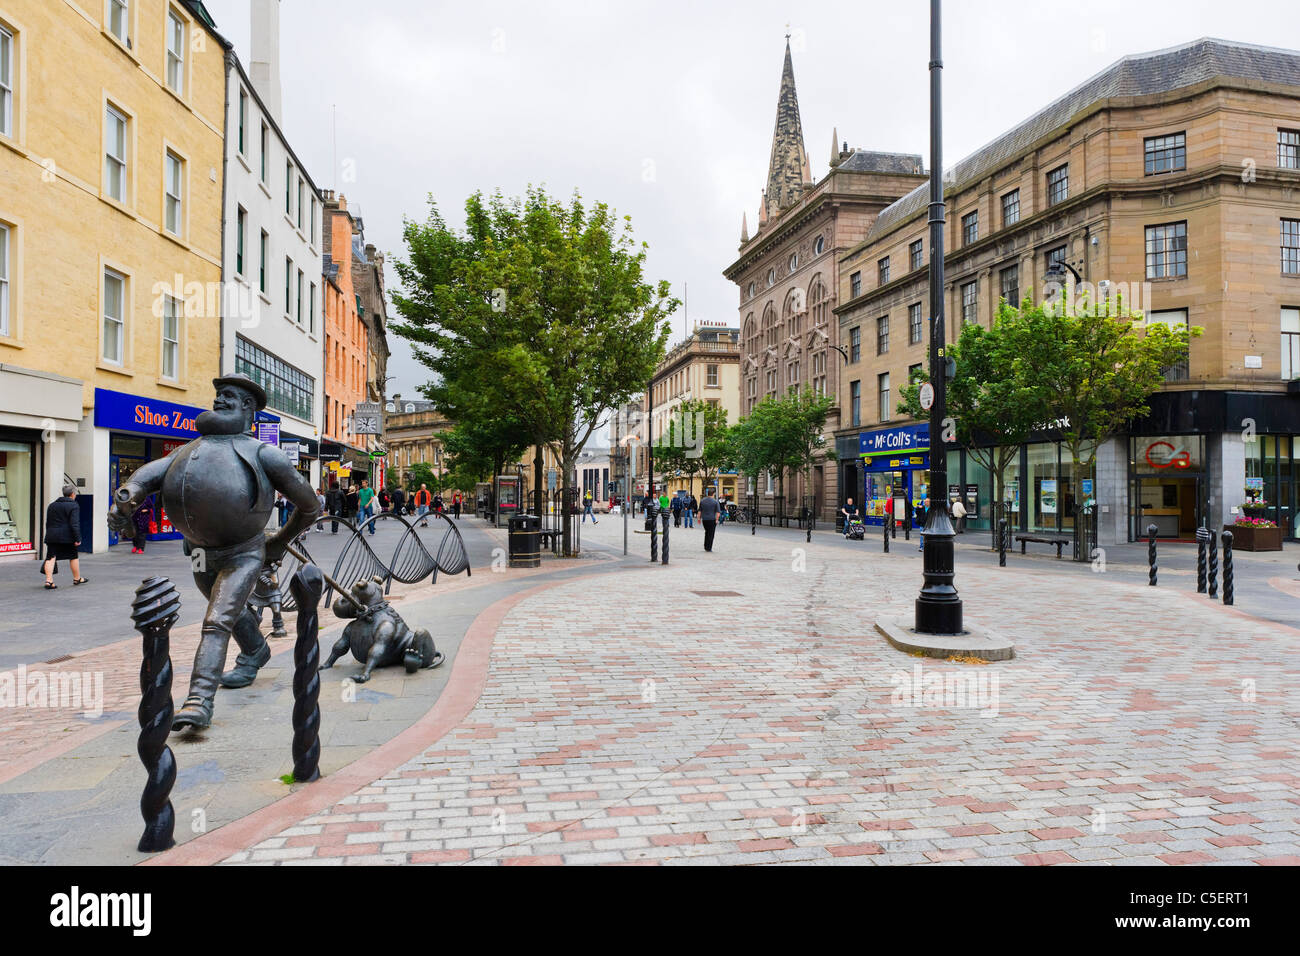 City Square with a statue of Desperate Dan and Dawg (from the Dandy Comic) to the left, Dundee, Central Lowlands, - Stock Image